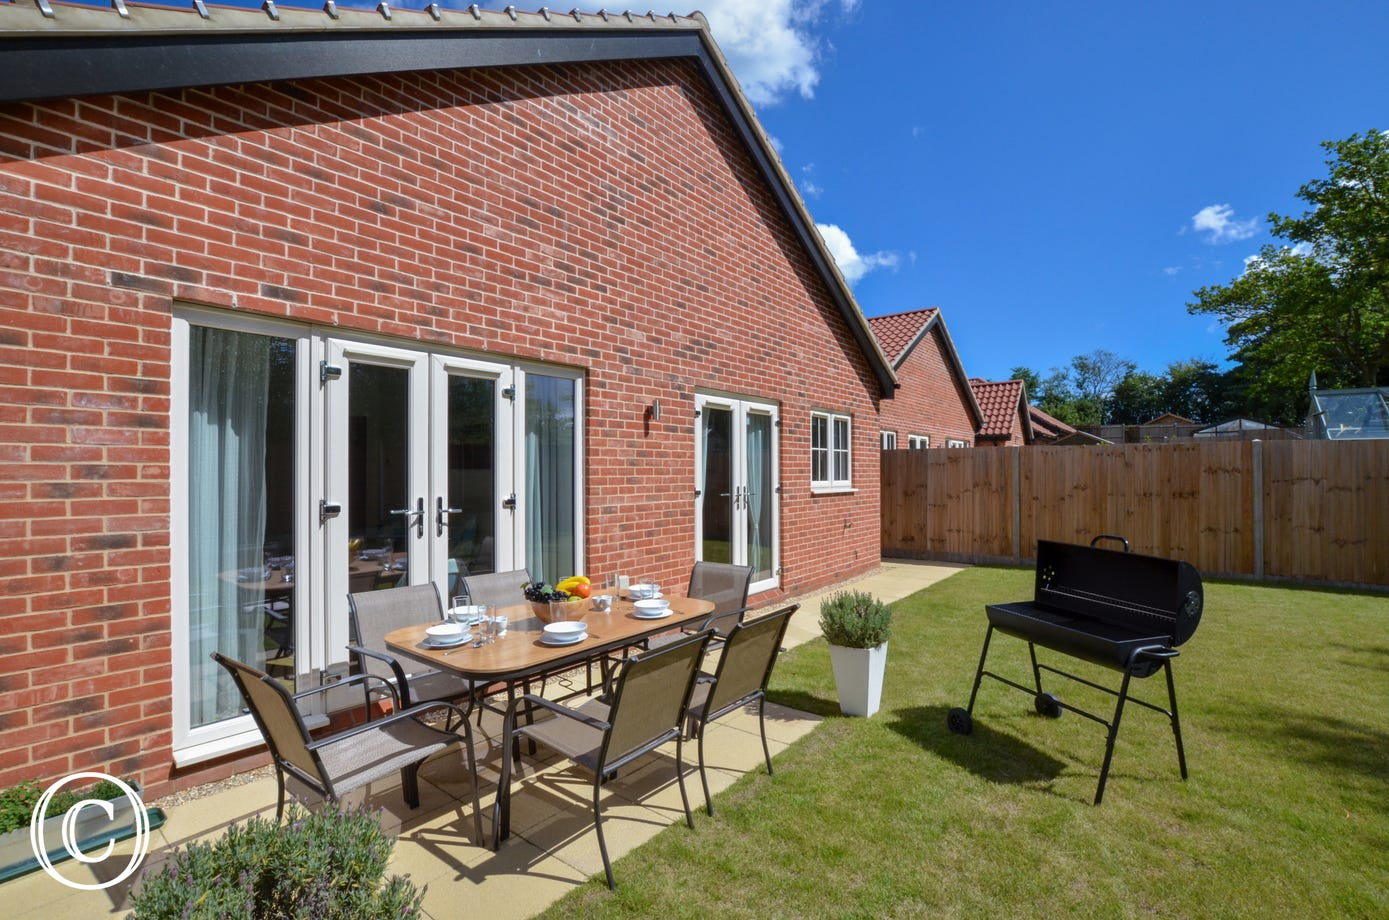 Rear garden with patio table and chairs